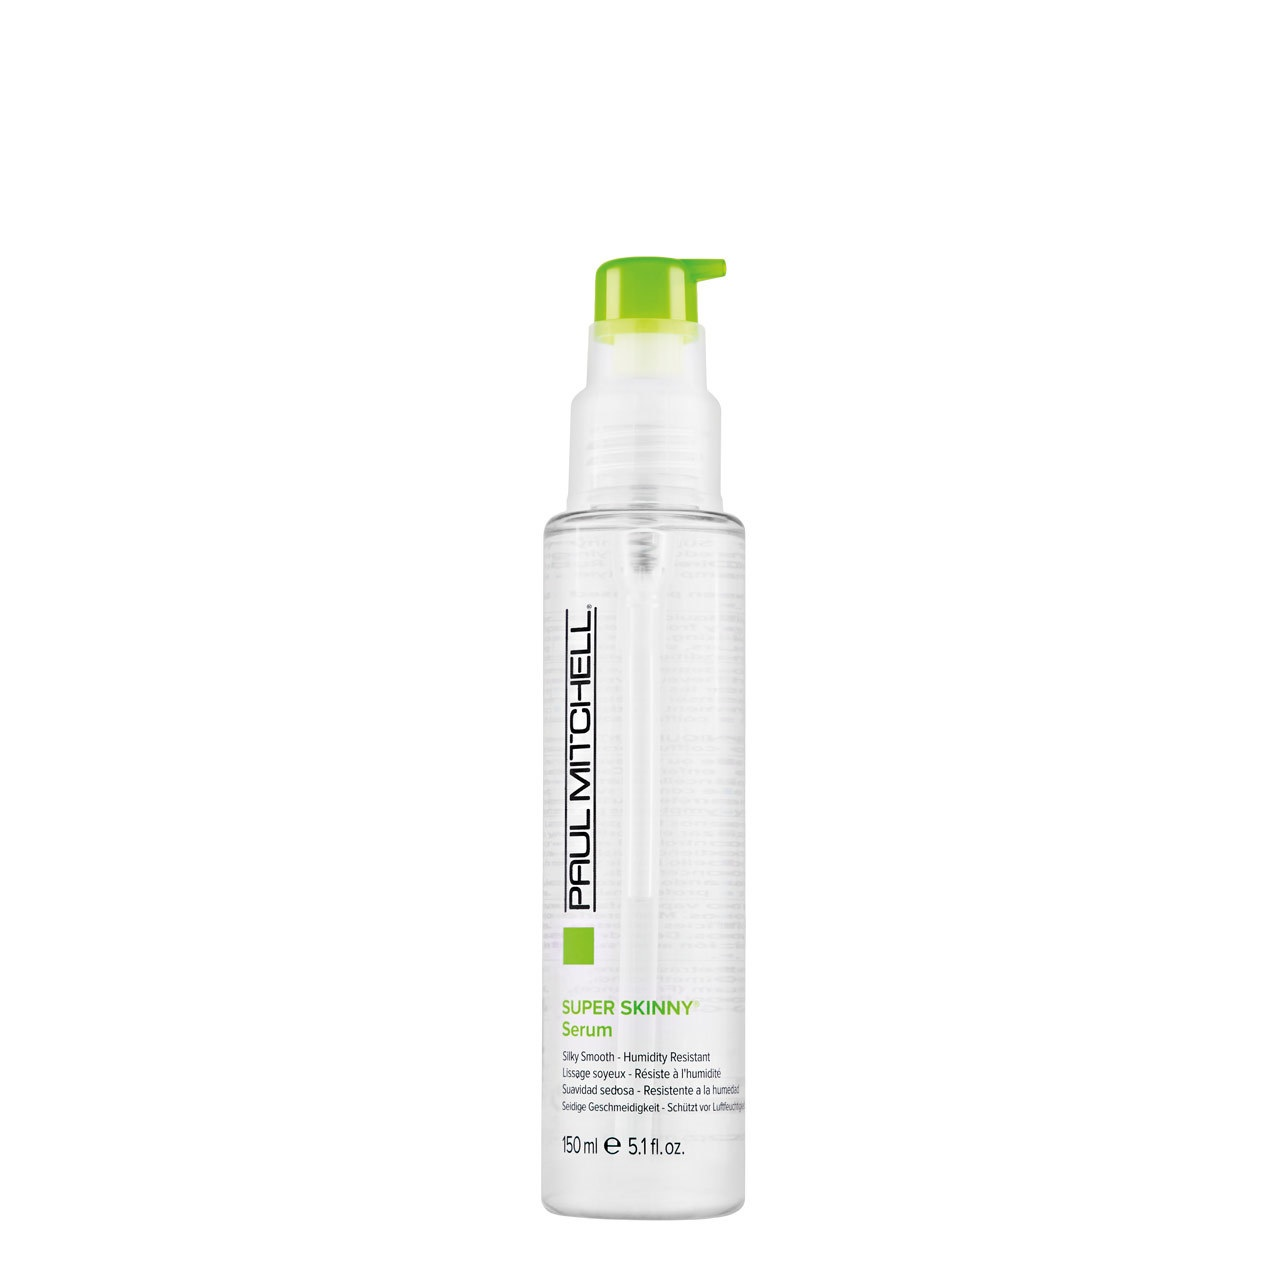 Paul Mitchell Super Skinny Serum